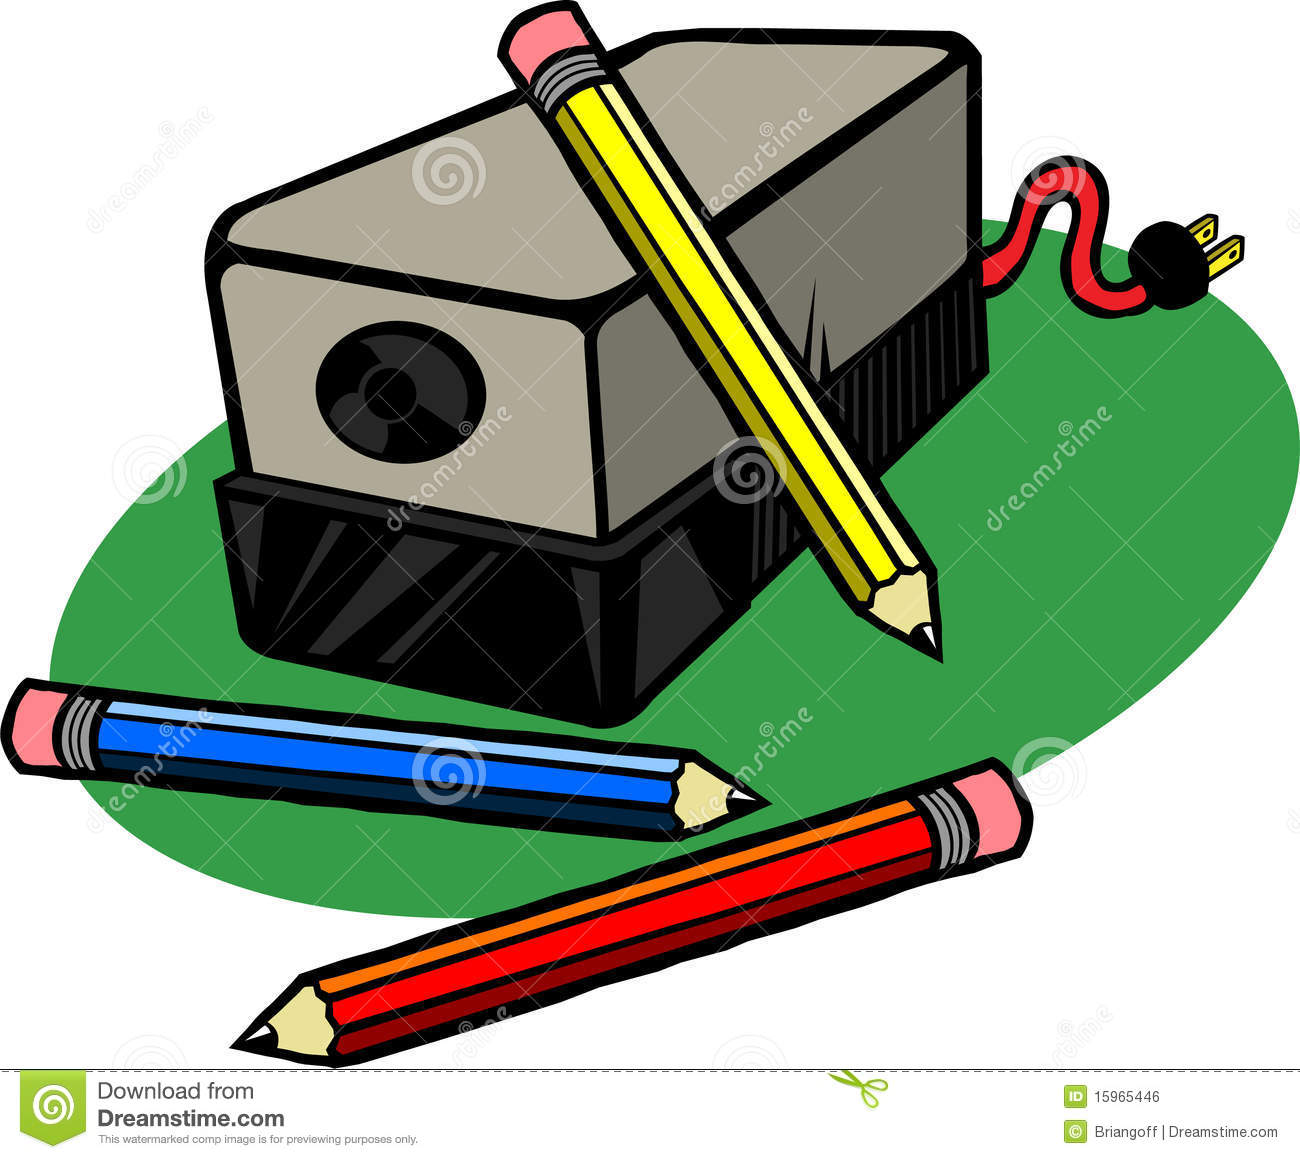 Pencil Sharpener Clip Art Electric Pencil Sharpener